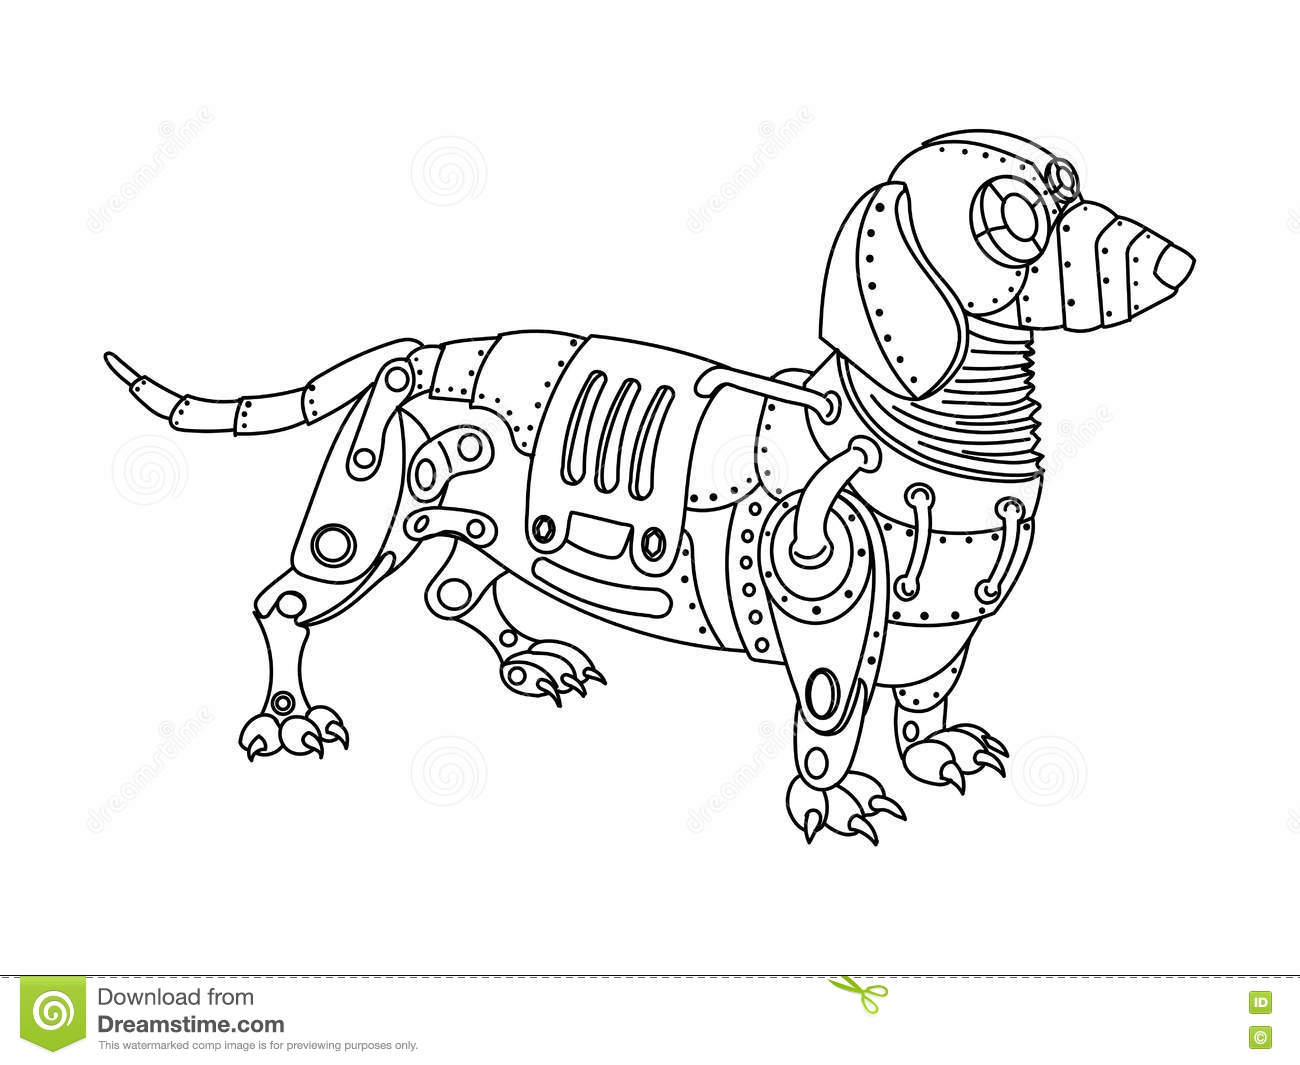 steampunk style dachshund dog coloring book vector mechanical animal adult illustration